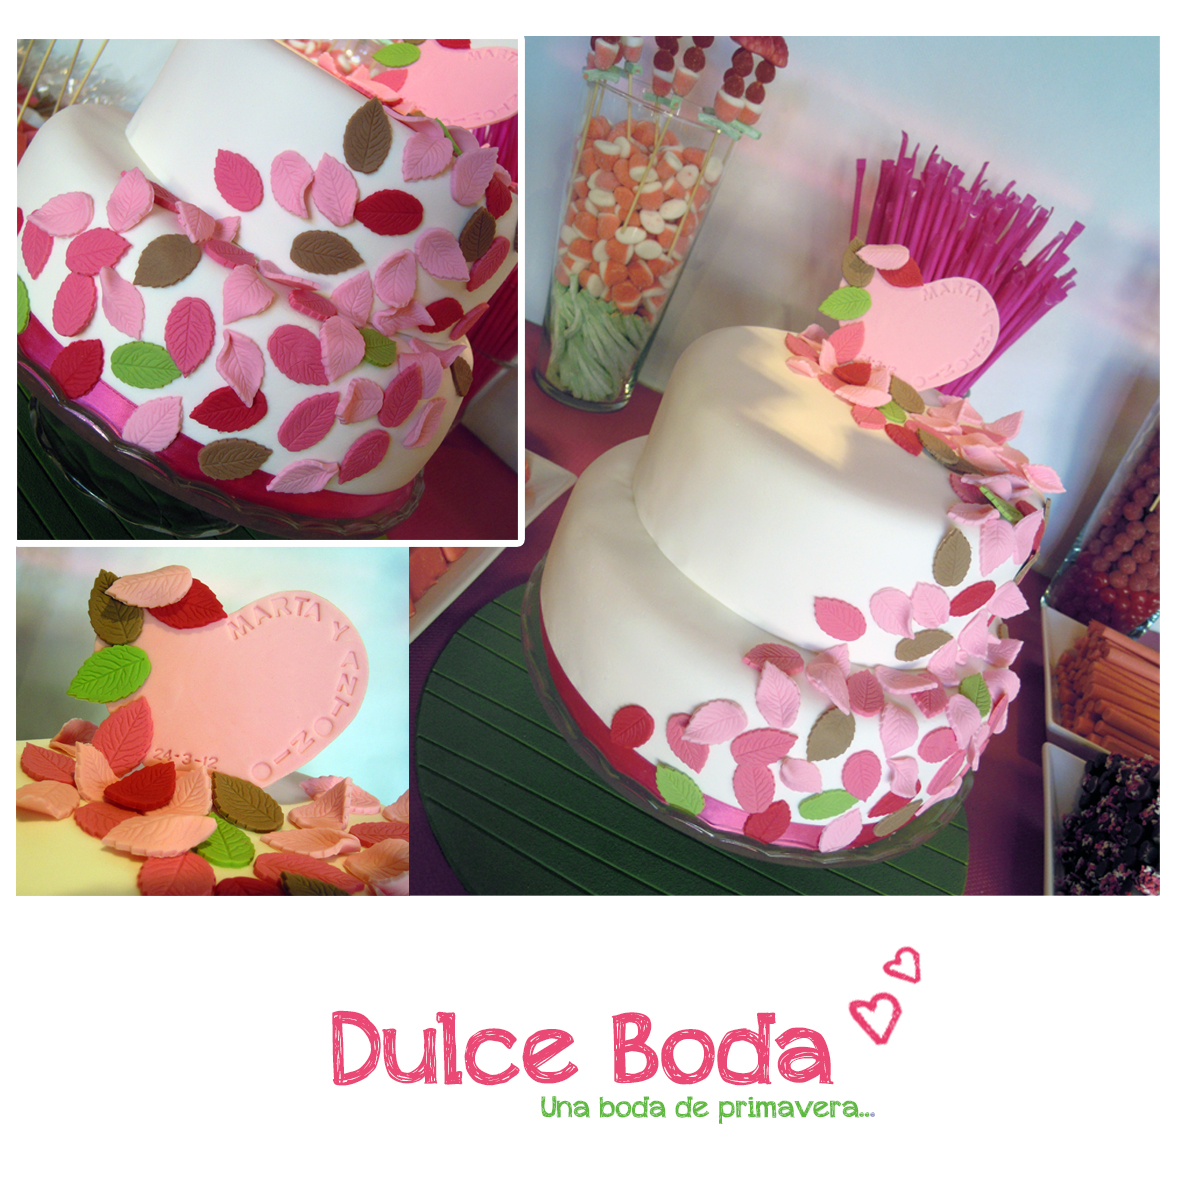 Dulce boda for Dulce boda